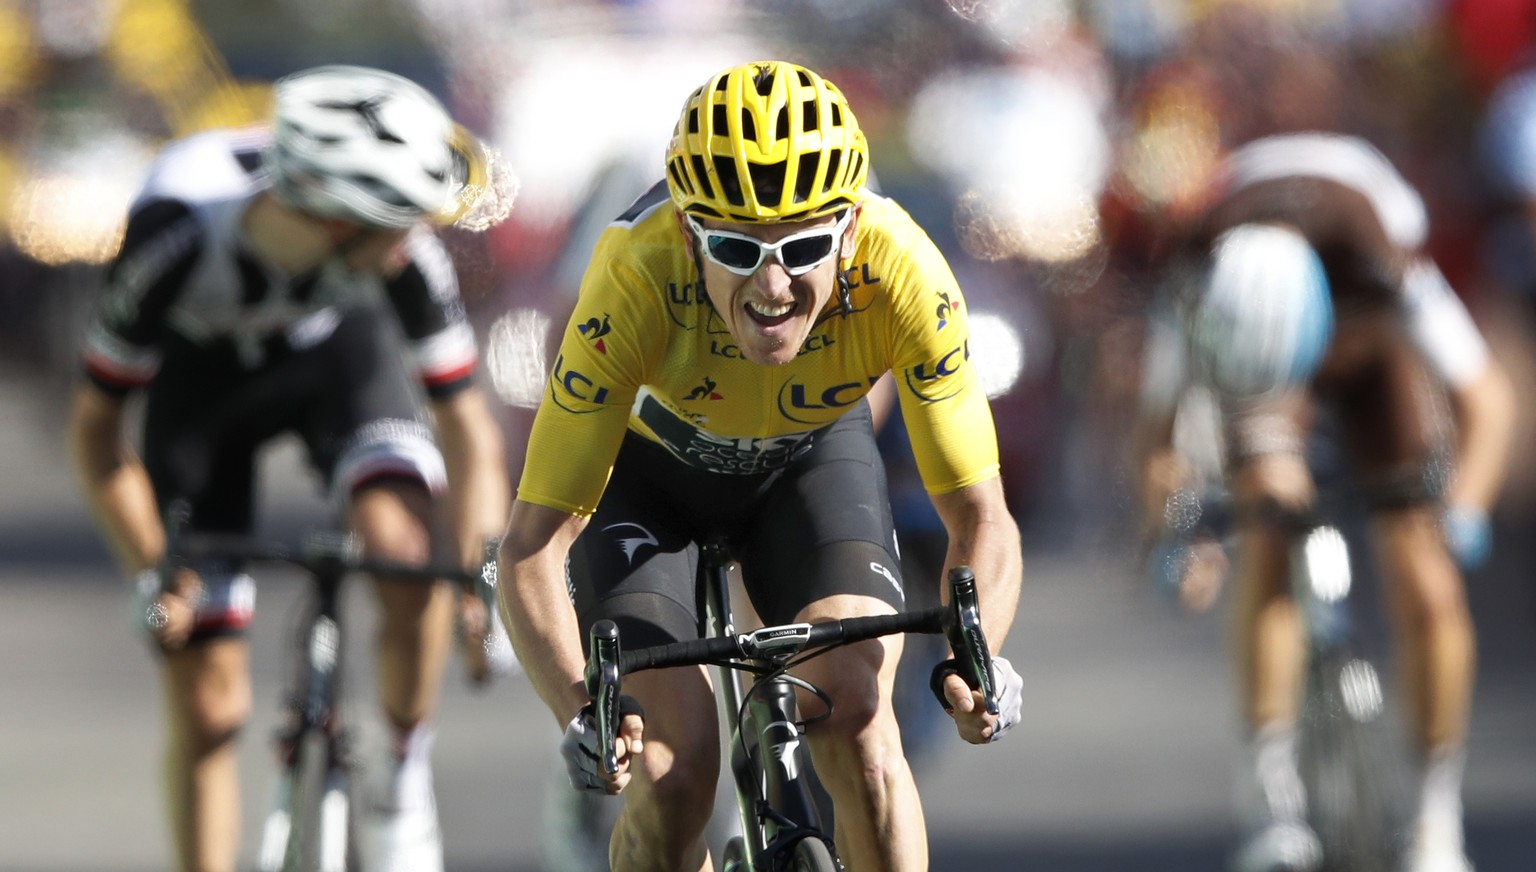 Britain's Geraint Thomas, wearing the overall leader's yellow jersey speeds to the finish line to win the twelfth stage of the Tour de France cycling race over 175.5 kilometers (109 miles) with start in Bourg-Saint-Maurice Les Arcs and Alpe d'Huez, France, Thursday, July 19, 2018. (AP Photo/Christophe Ena )